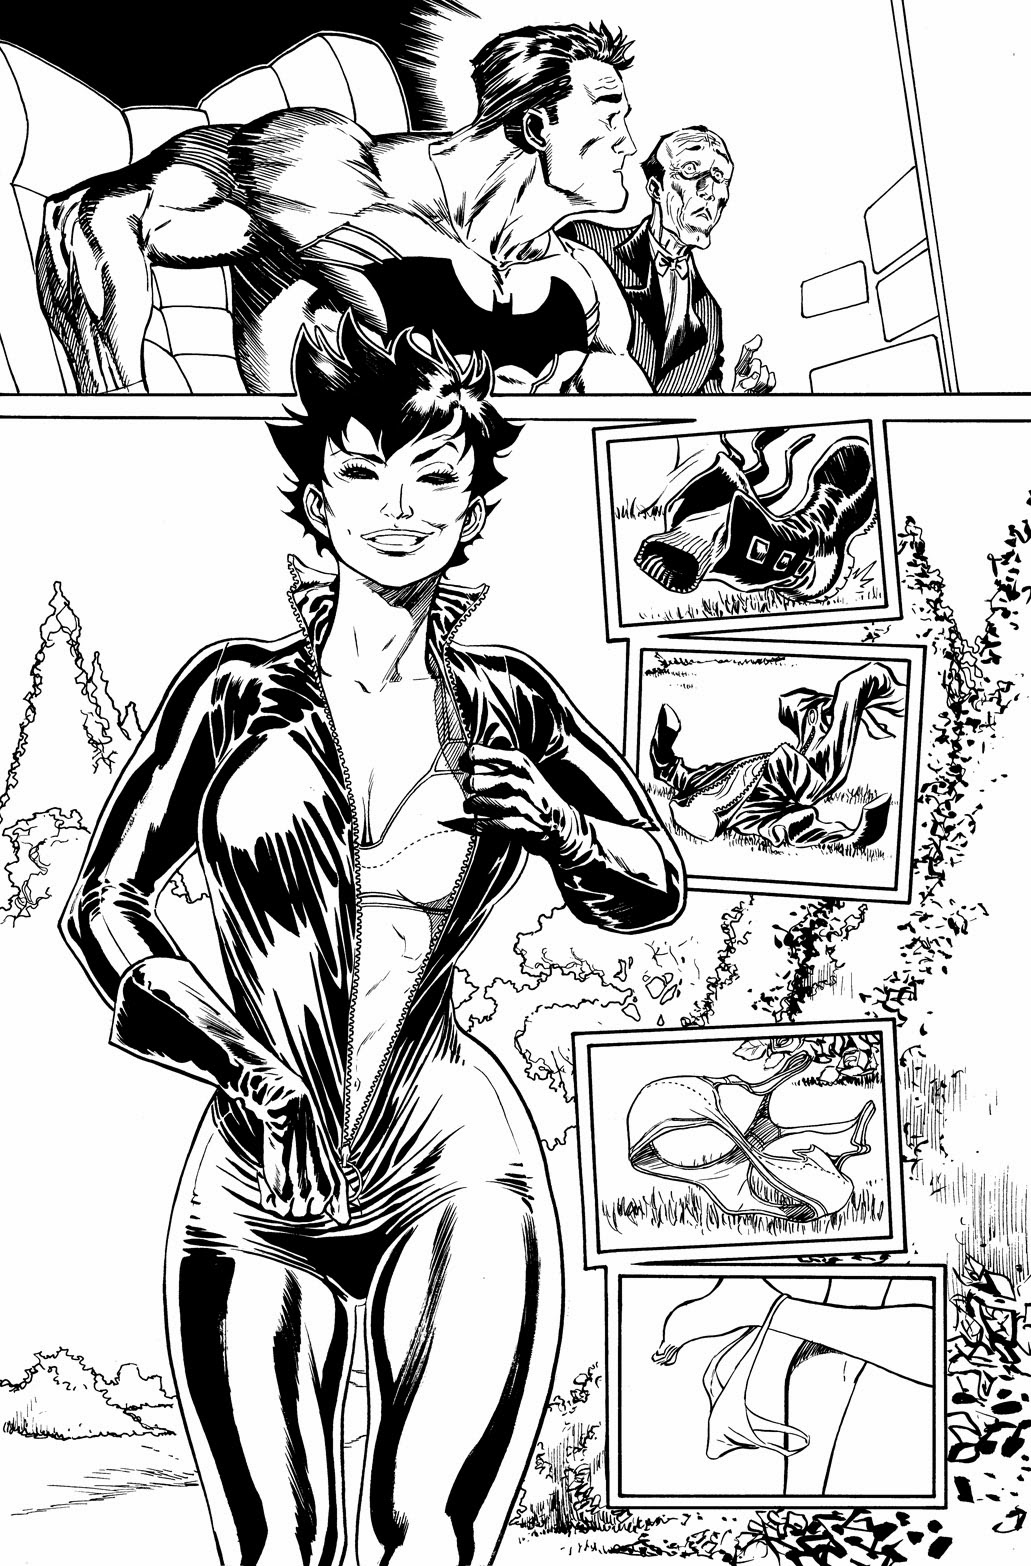 CATWOMAN #03 unseen pages by Guillem March